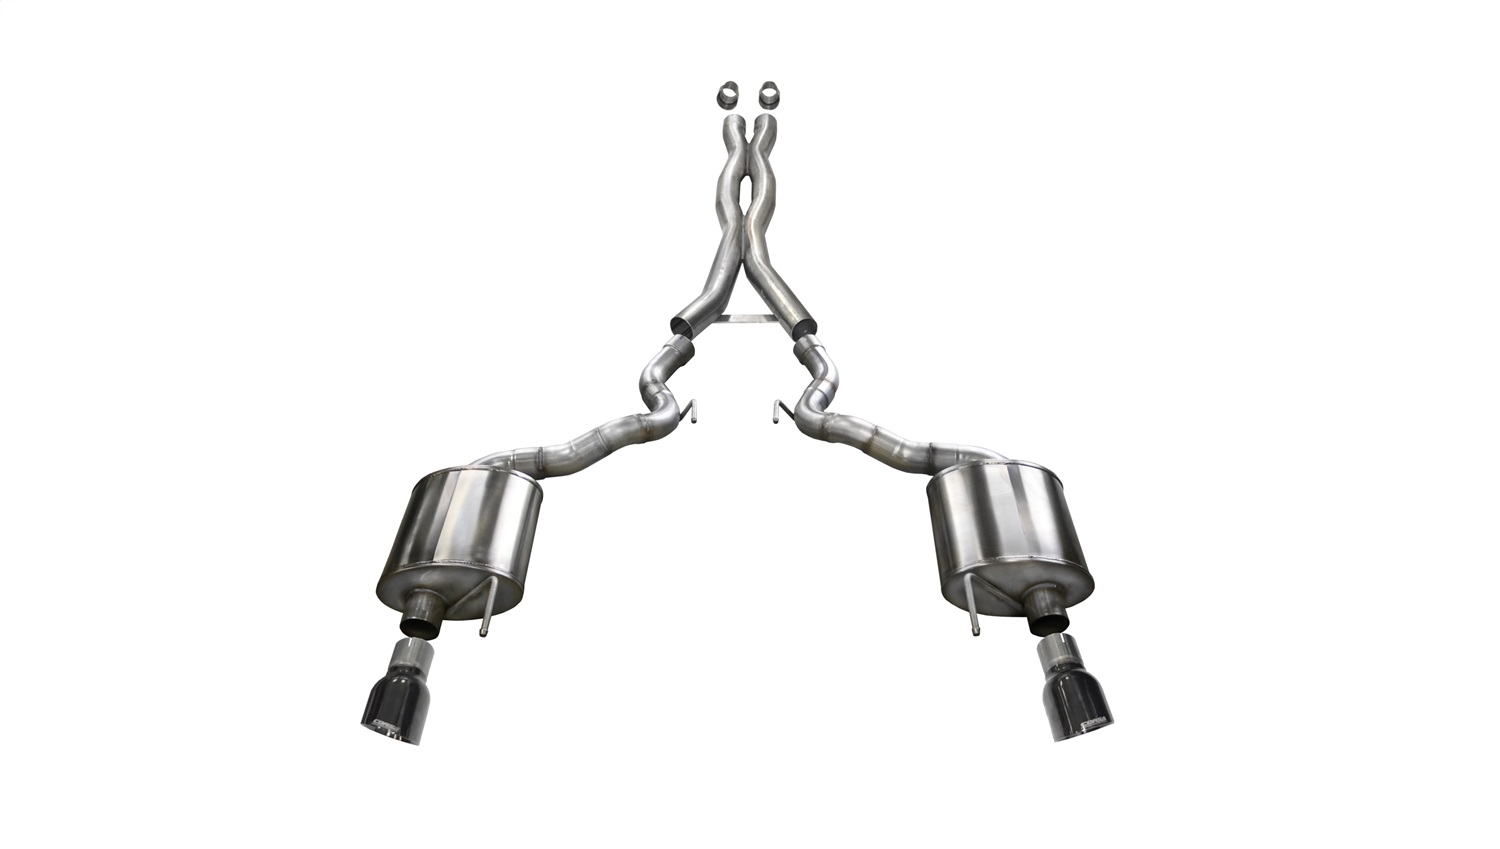 Corsa Performance 14341BLK Sport Cat-Back Exhaust System Fits 15-17 Mustang